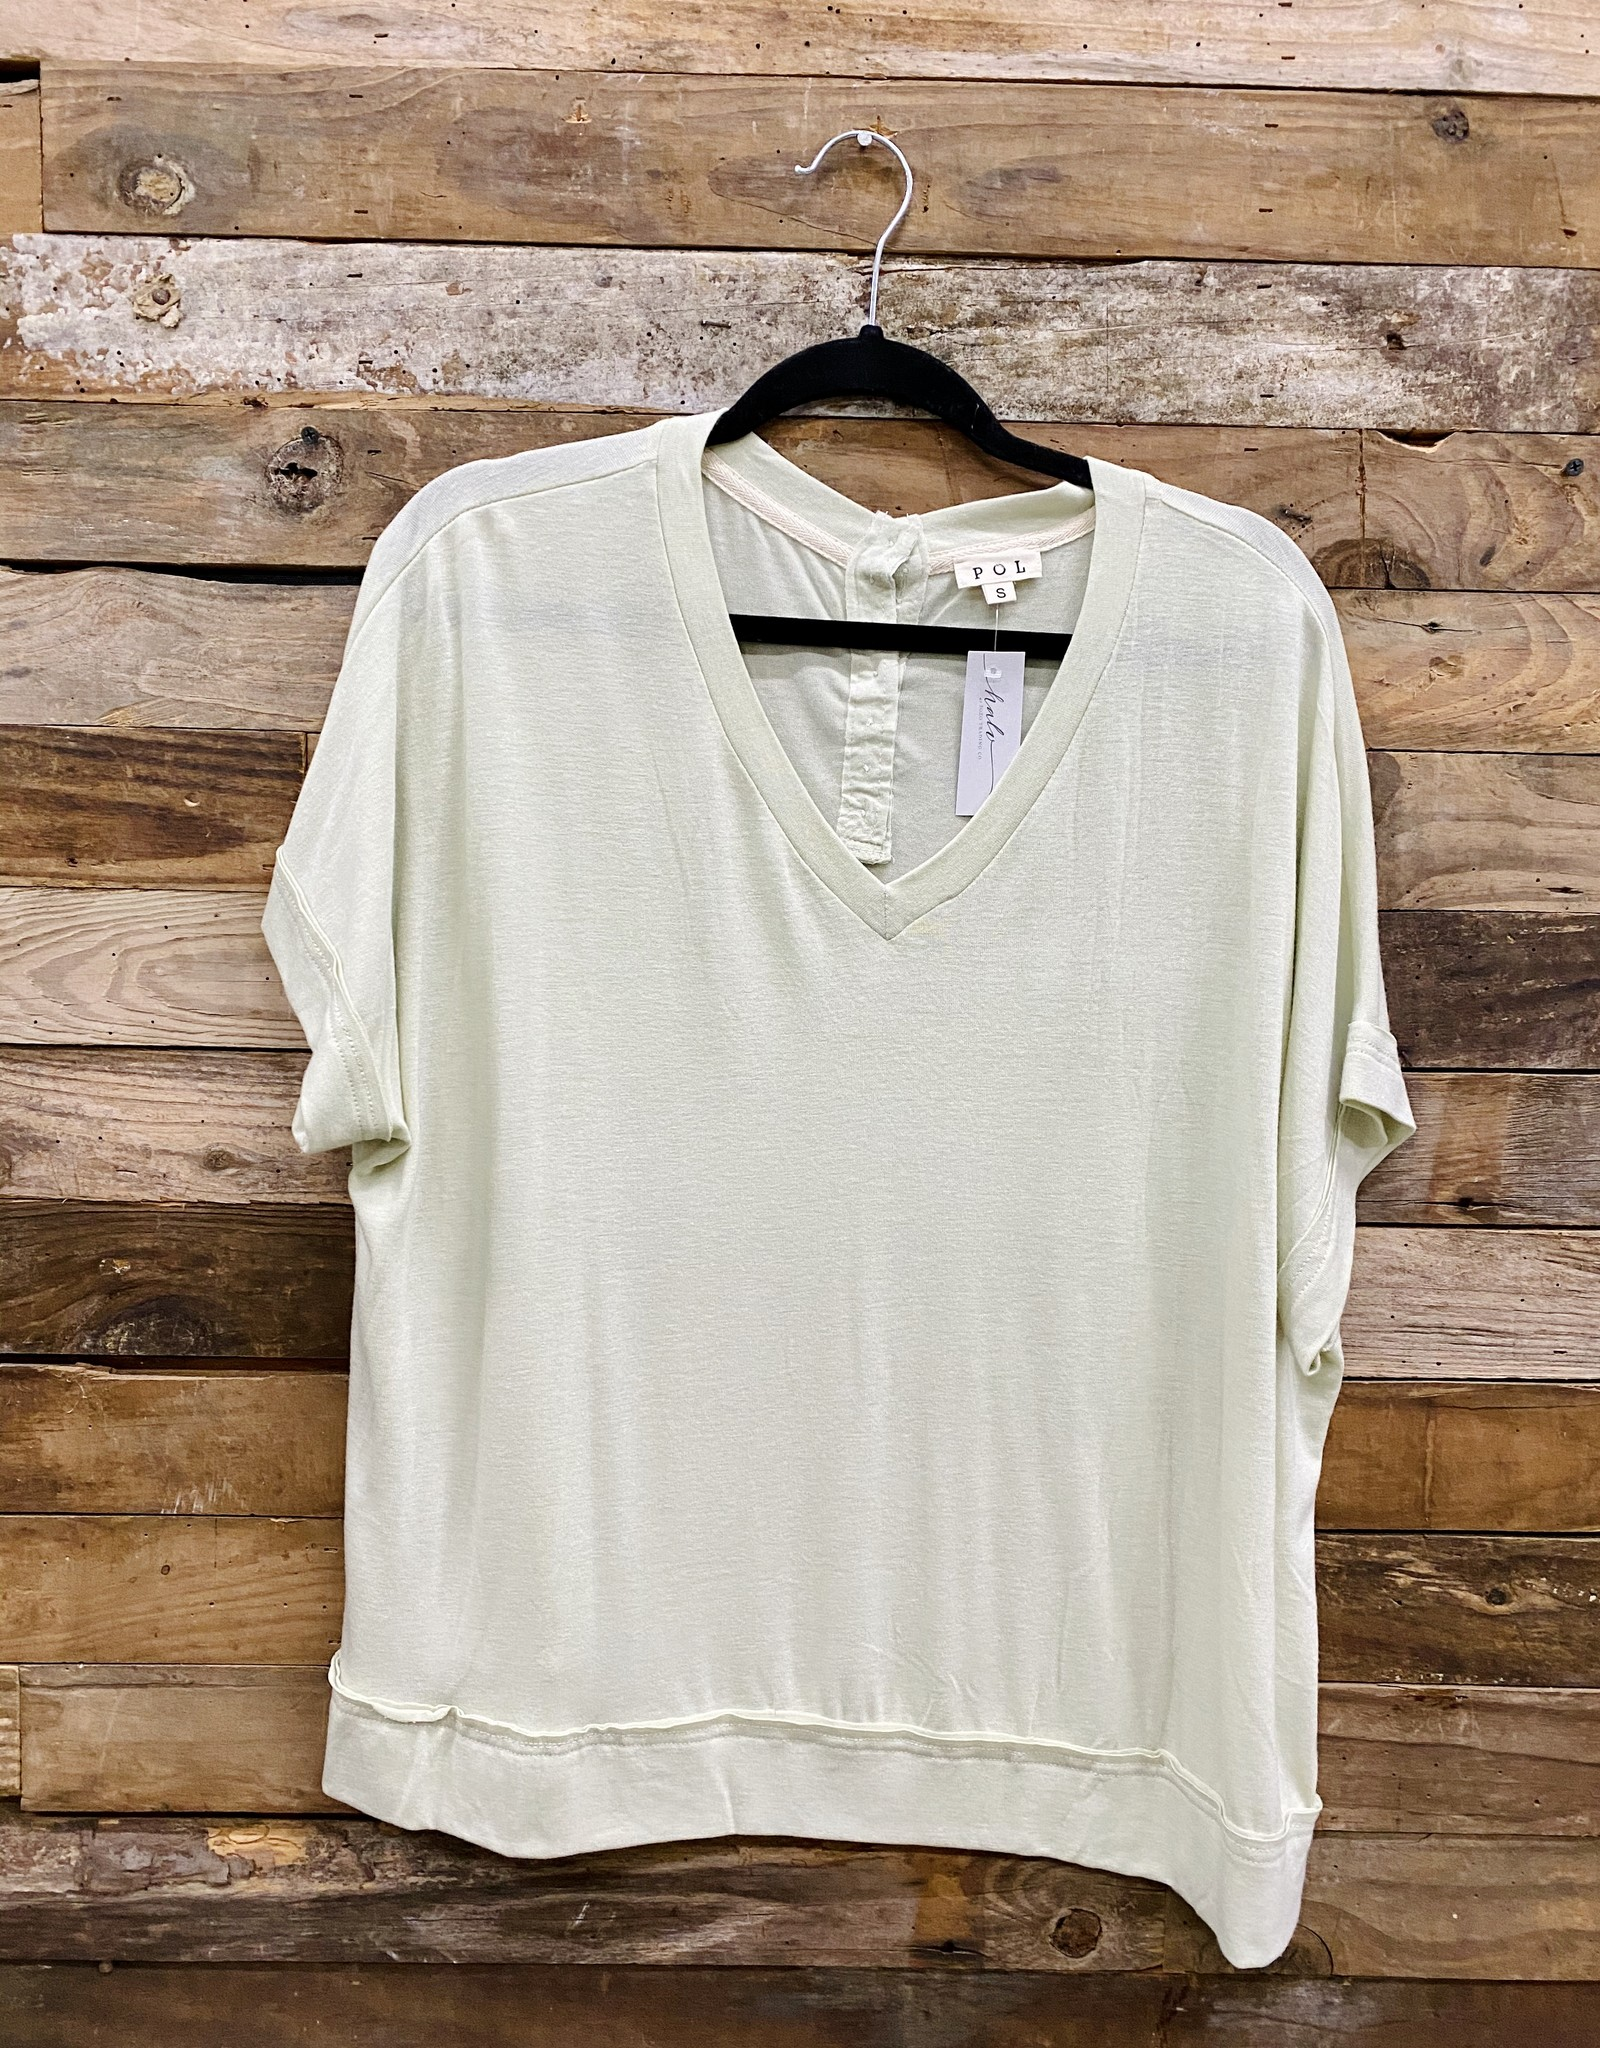 Halo Pistachio Ice V-Neck